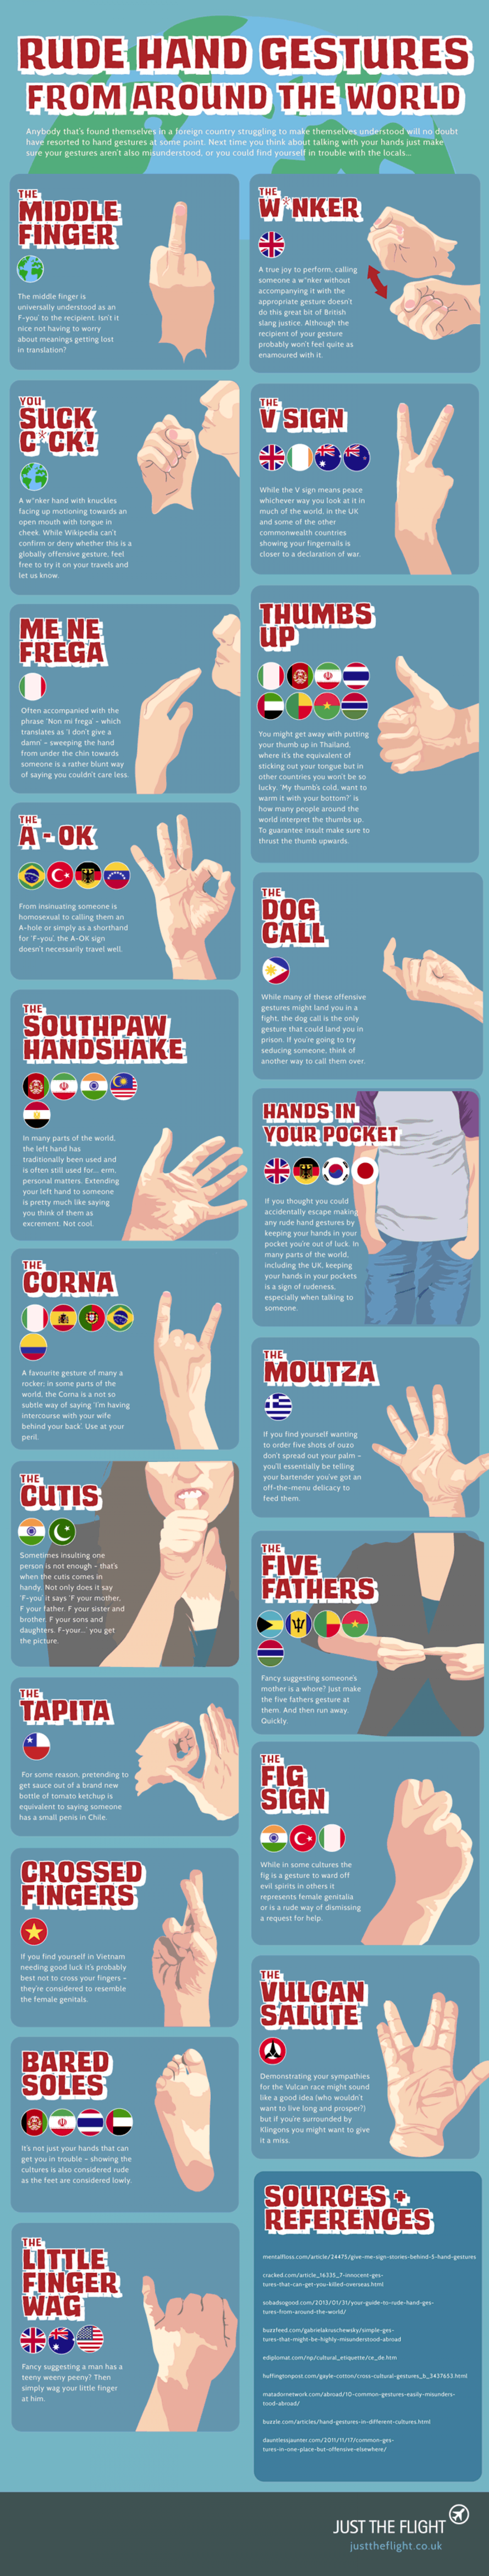 Rude Hand Gestures from Around the World Infographic